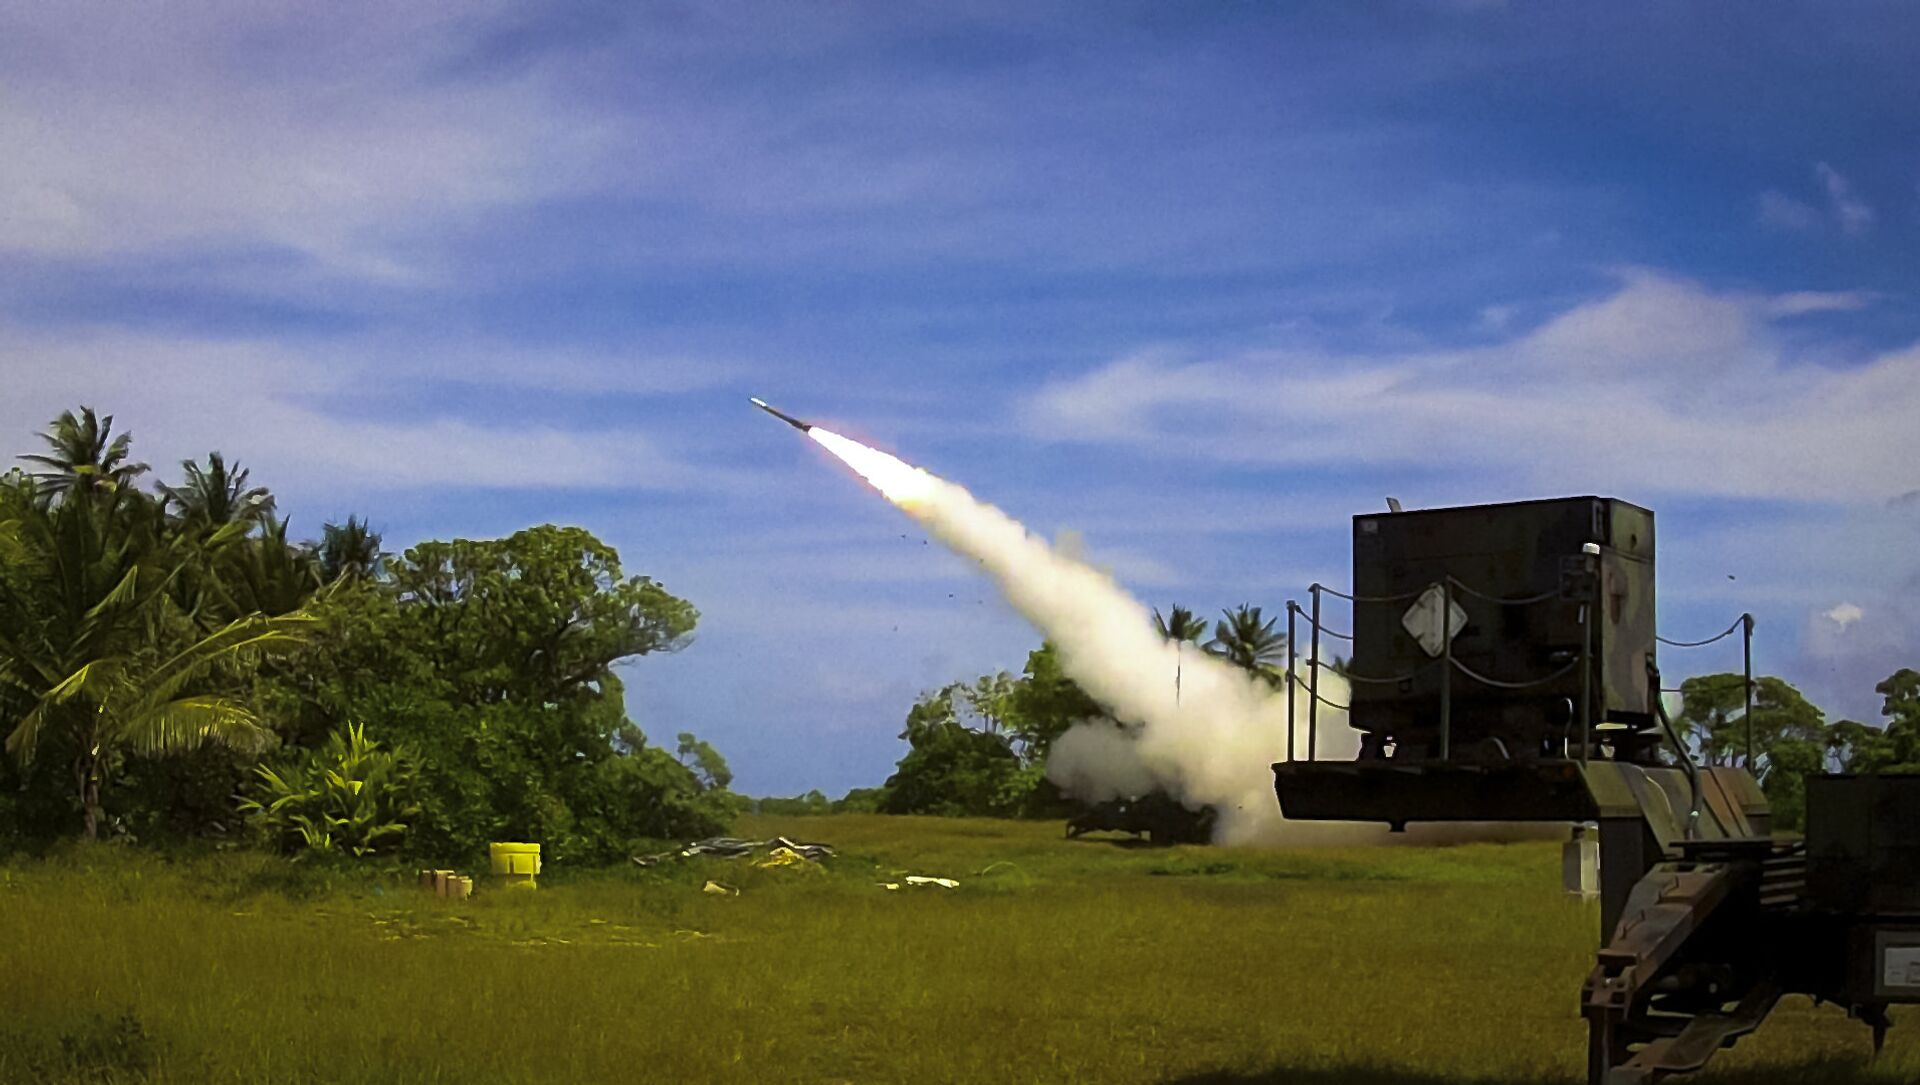 A Patriot Advanced Capability 3 (PAC-3) interceptor is launched from Omelek Island during MDA's historic integrated flight test on Oct. 24, 2012. - Sputnik International, 1920, 27.07.2021